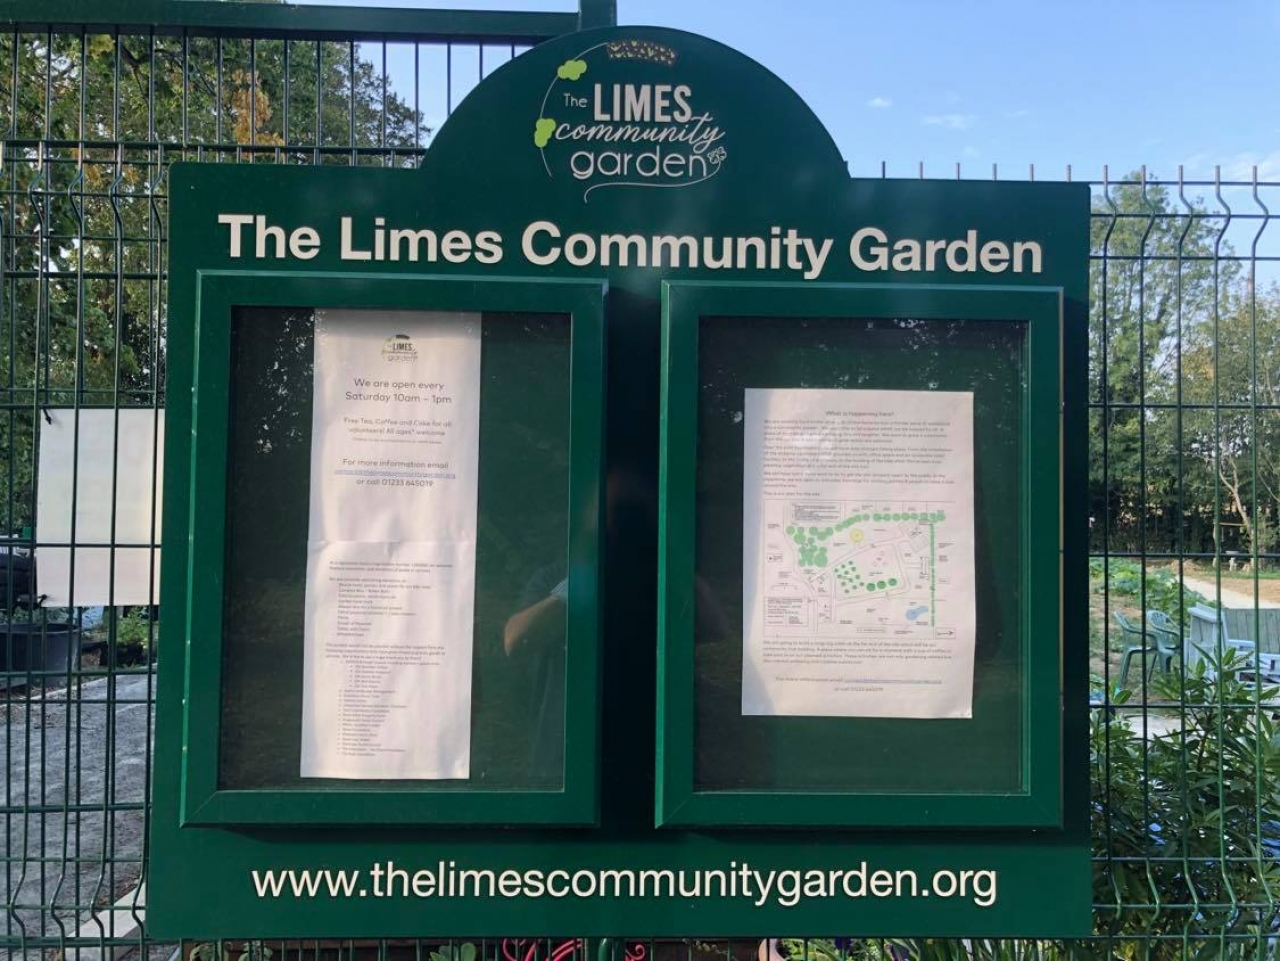 >The Limes Community Garden